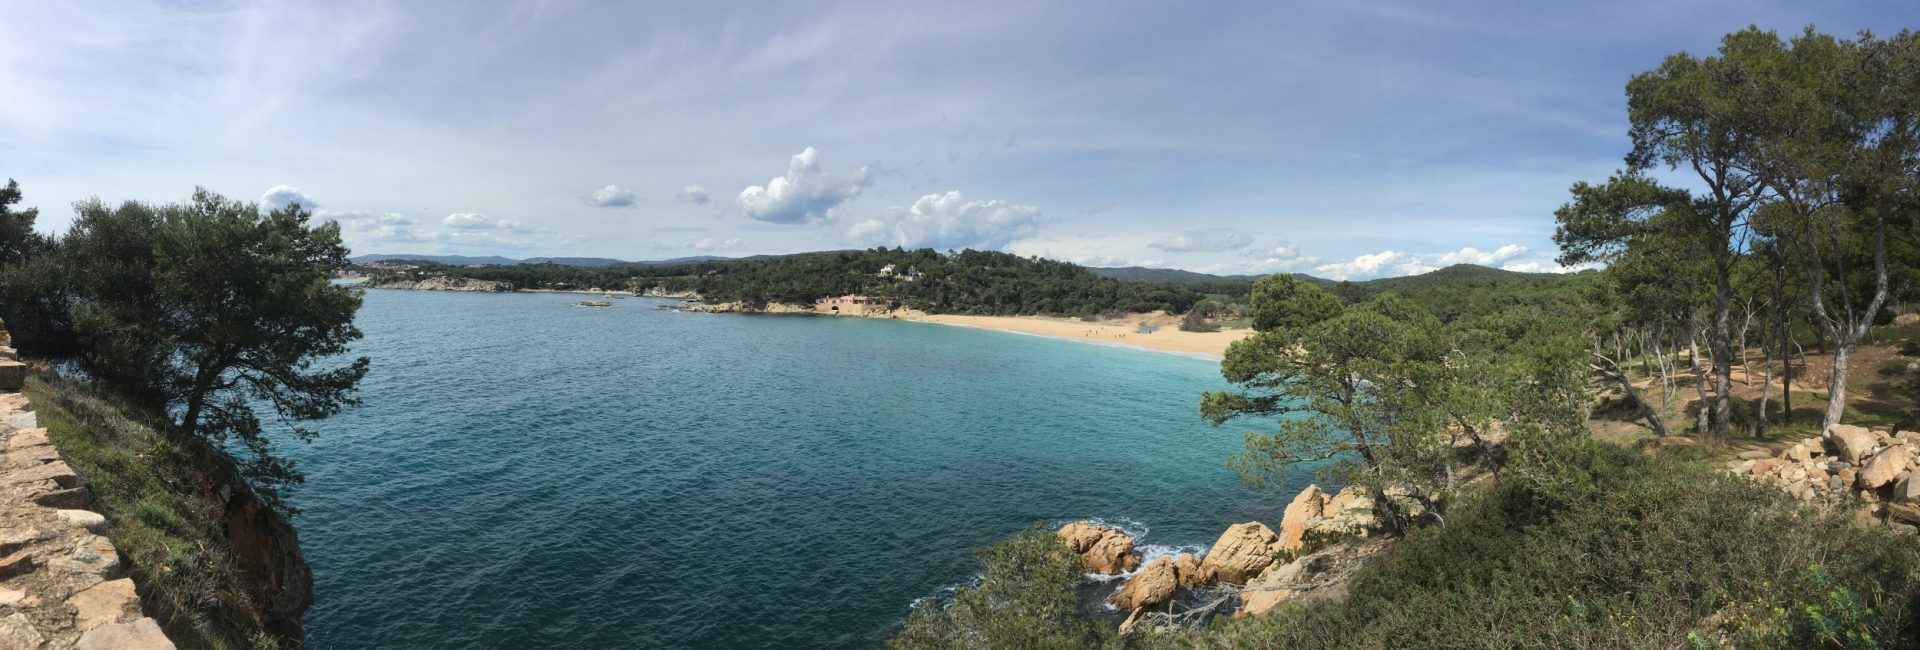 Spain Costa Brava Panorama Blue Walk small group walking vacations